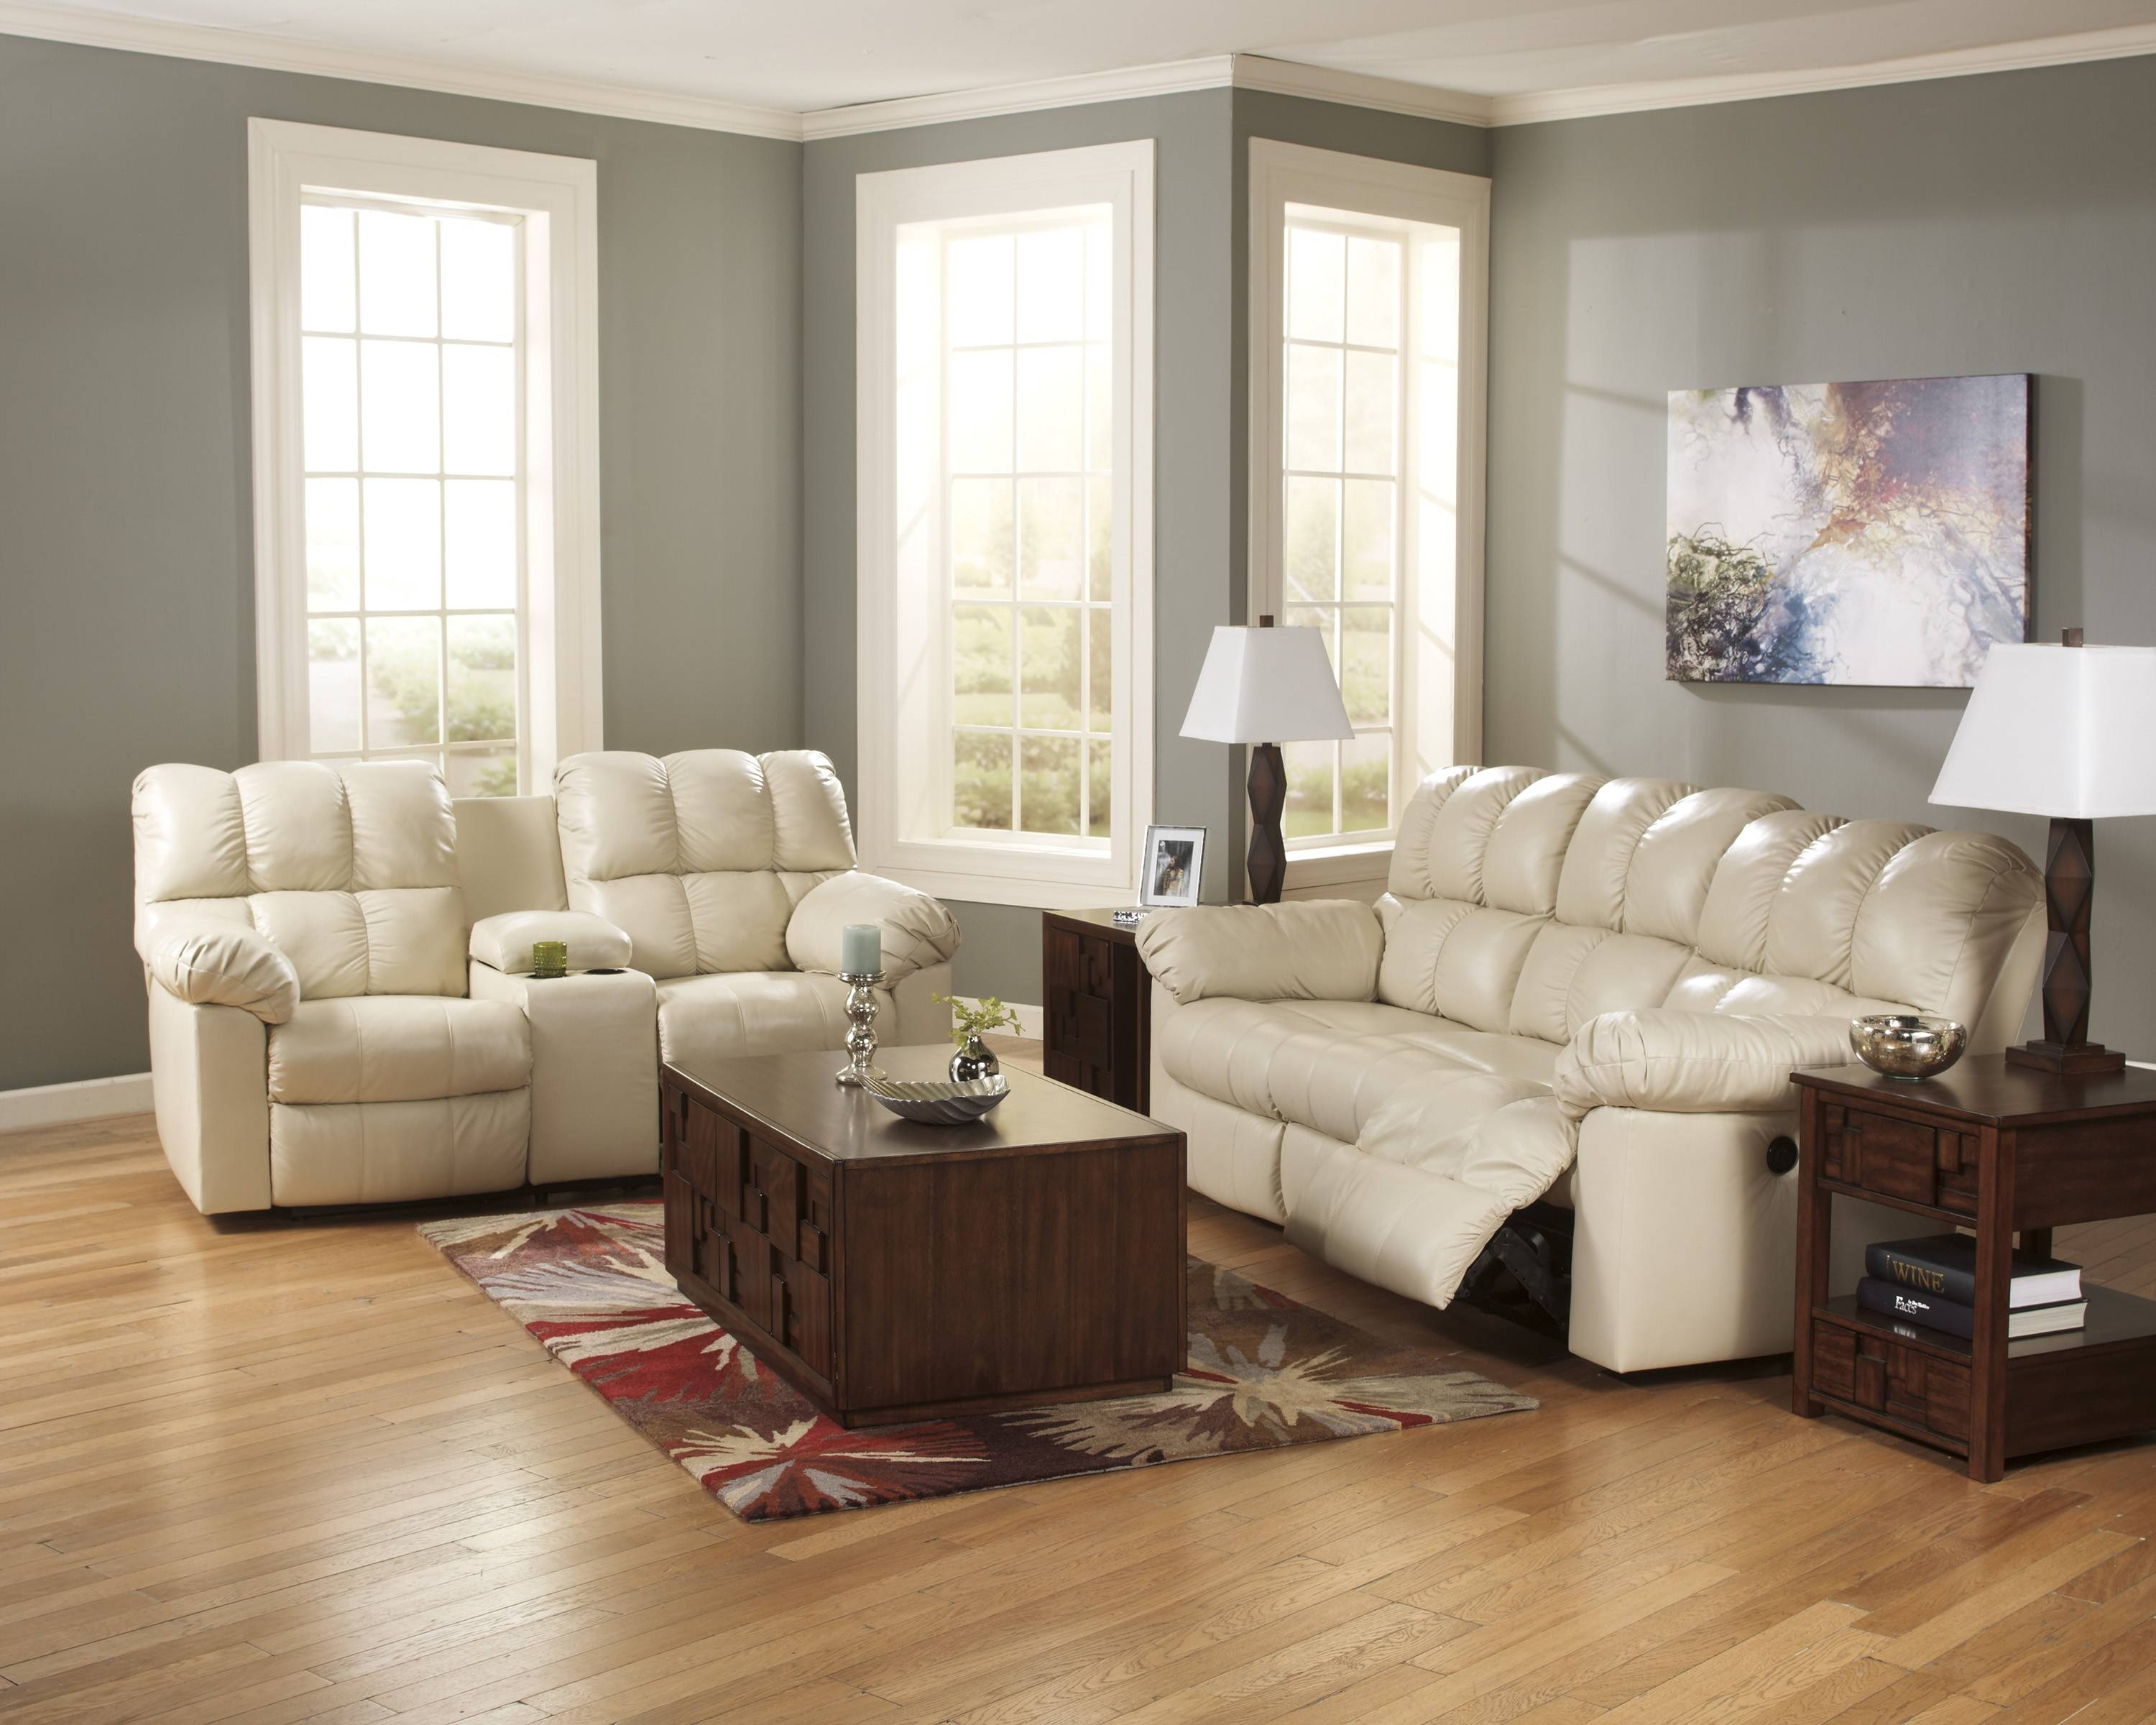 Cream Sectional Sofa. Appealing Cream Colored Sectional Sofa Large pertaining to Cream Colored Sofas (Image 14 of 30)